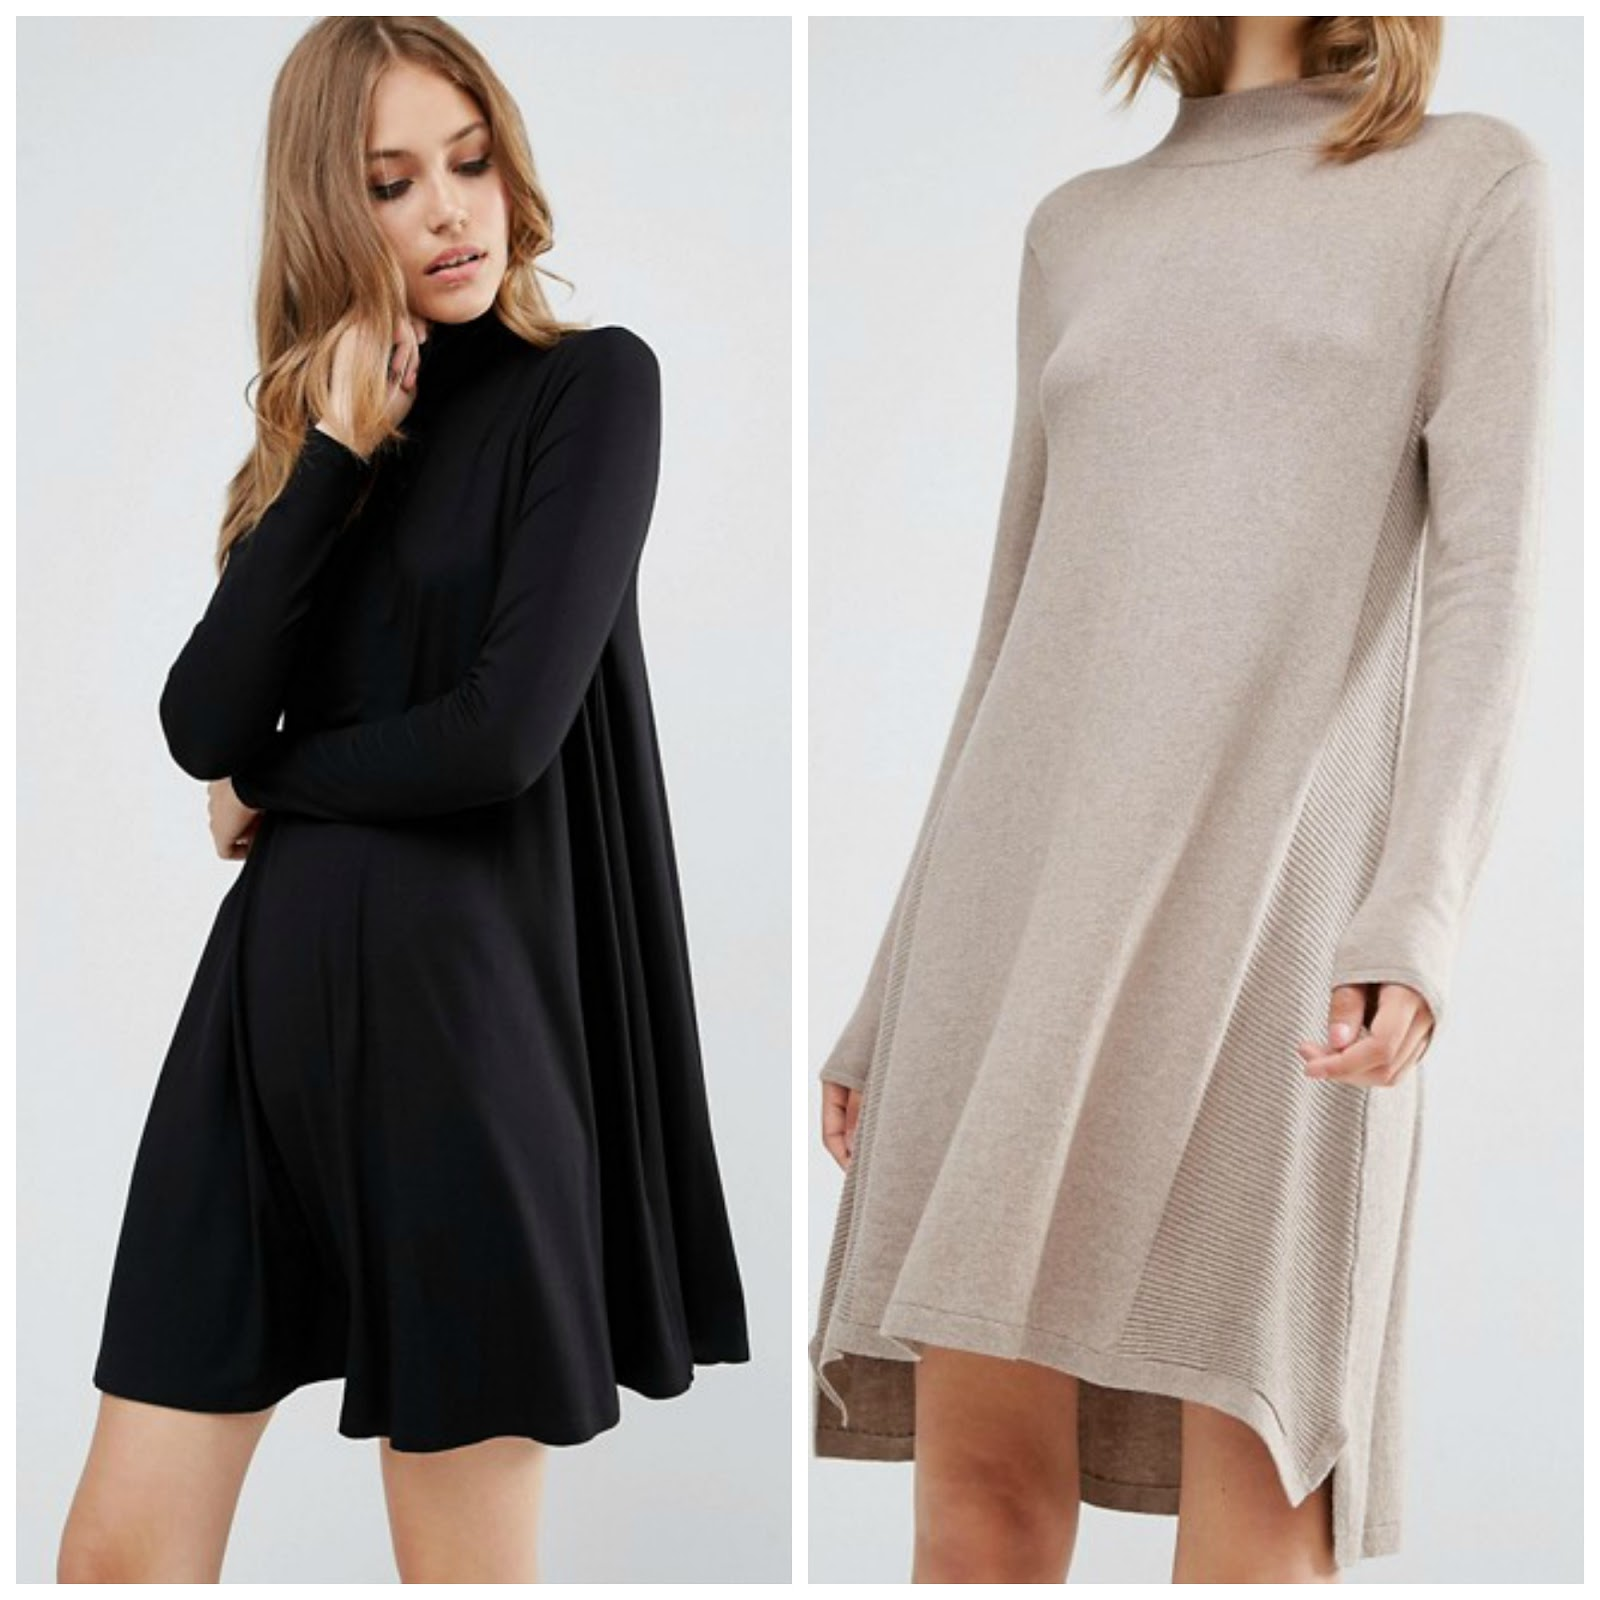 Turtleneck Sweater Dress Under $50